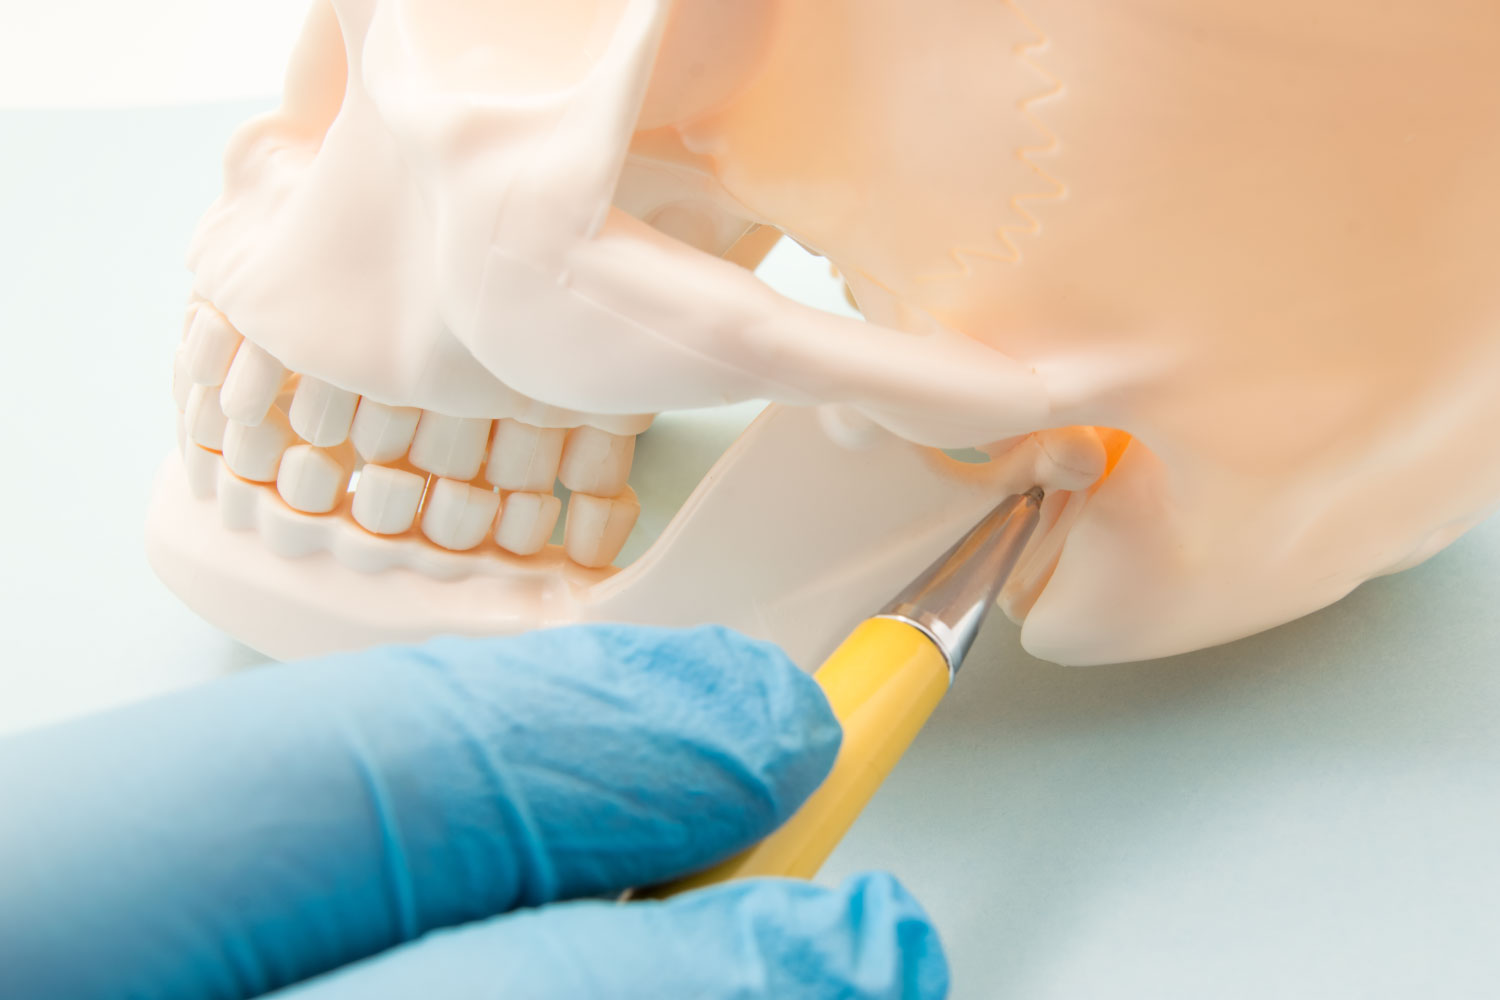 Dentist pointing at the TMJ on a fake skull to indicate TMJ dysfunction or TMD